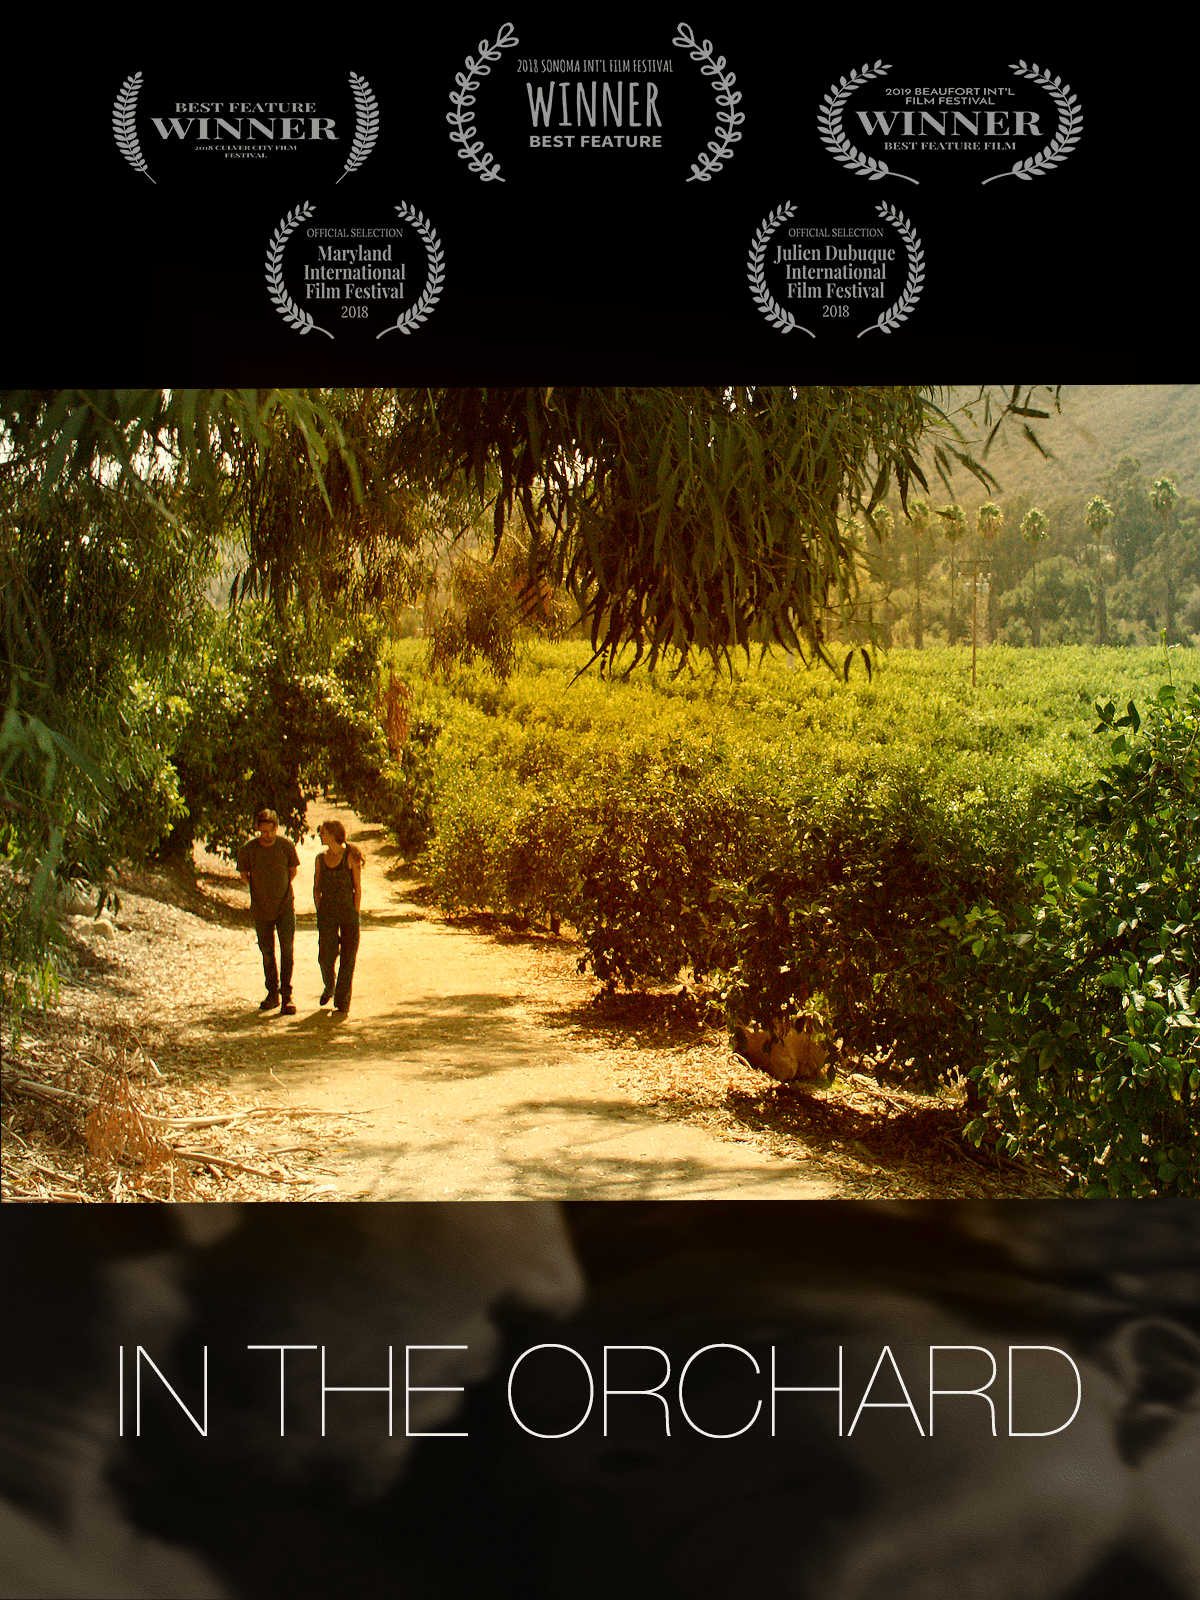 In the Orchard is an independent film that has won multiple awards at film festivals including Sonoma International film festival, Culver City Film Festival and Beaufort Film Festival #film #independentfilm. It is the story of a homeless veteran and a woman who has just lost her family.  #Veteran